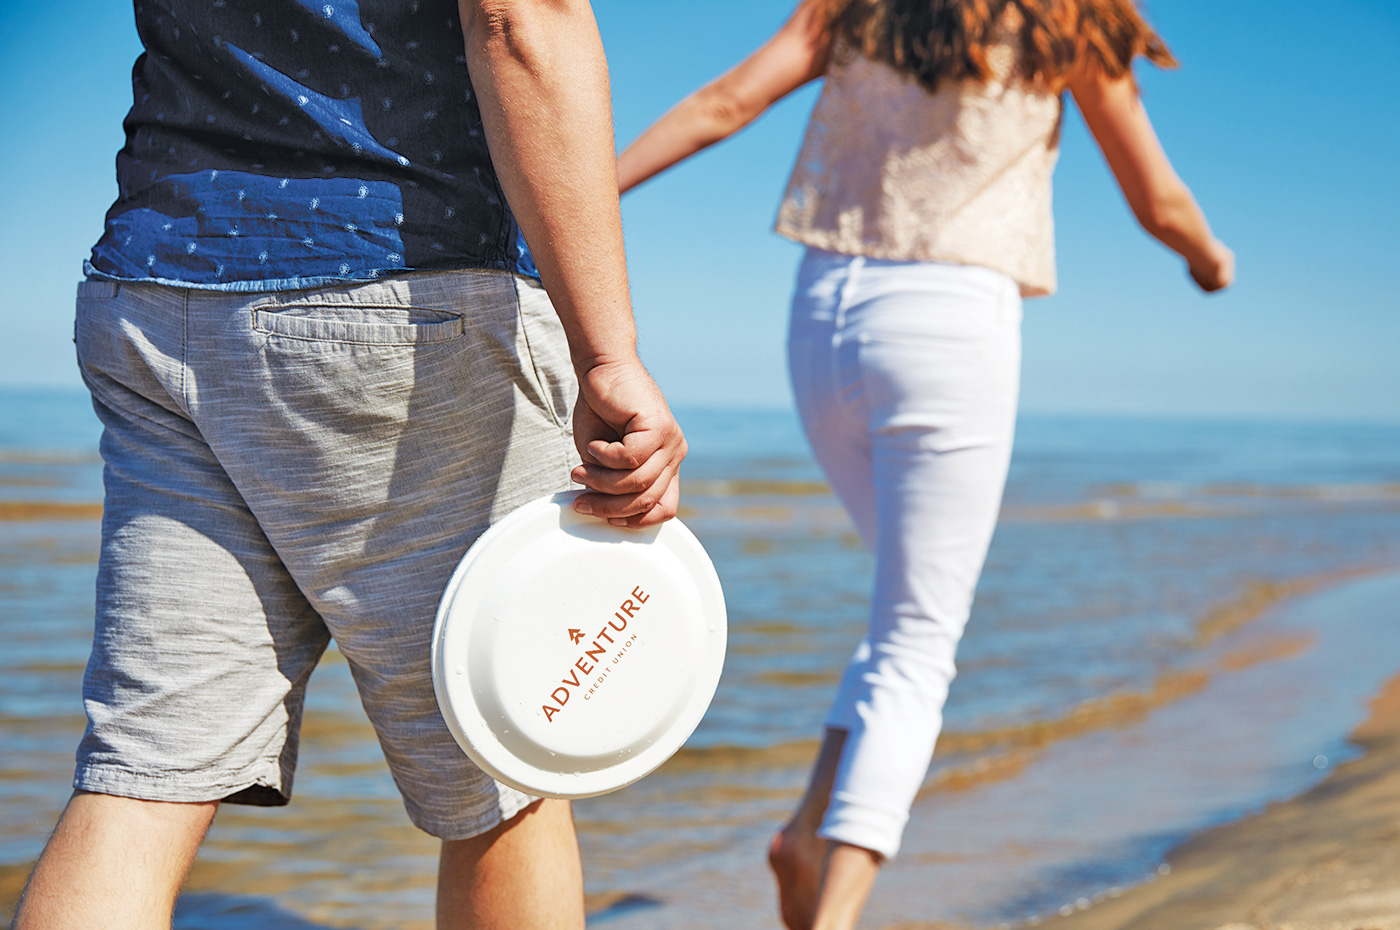 Adventure Credit Union frisbee on beach